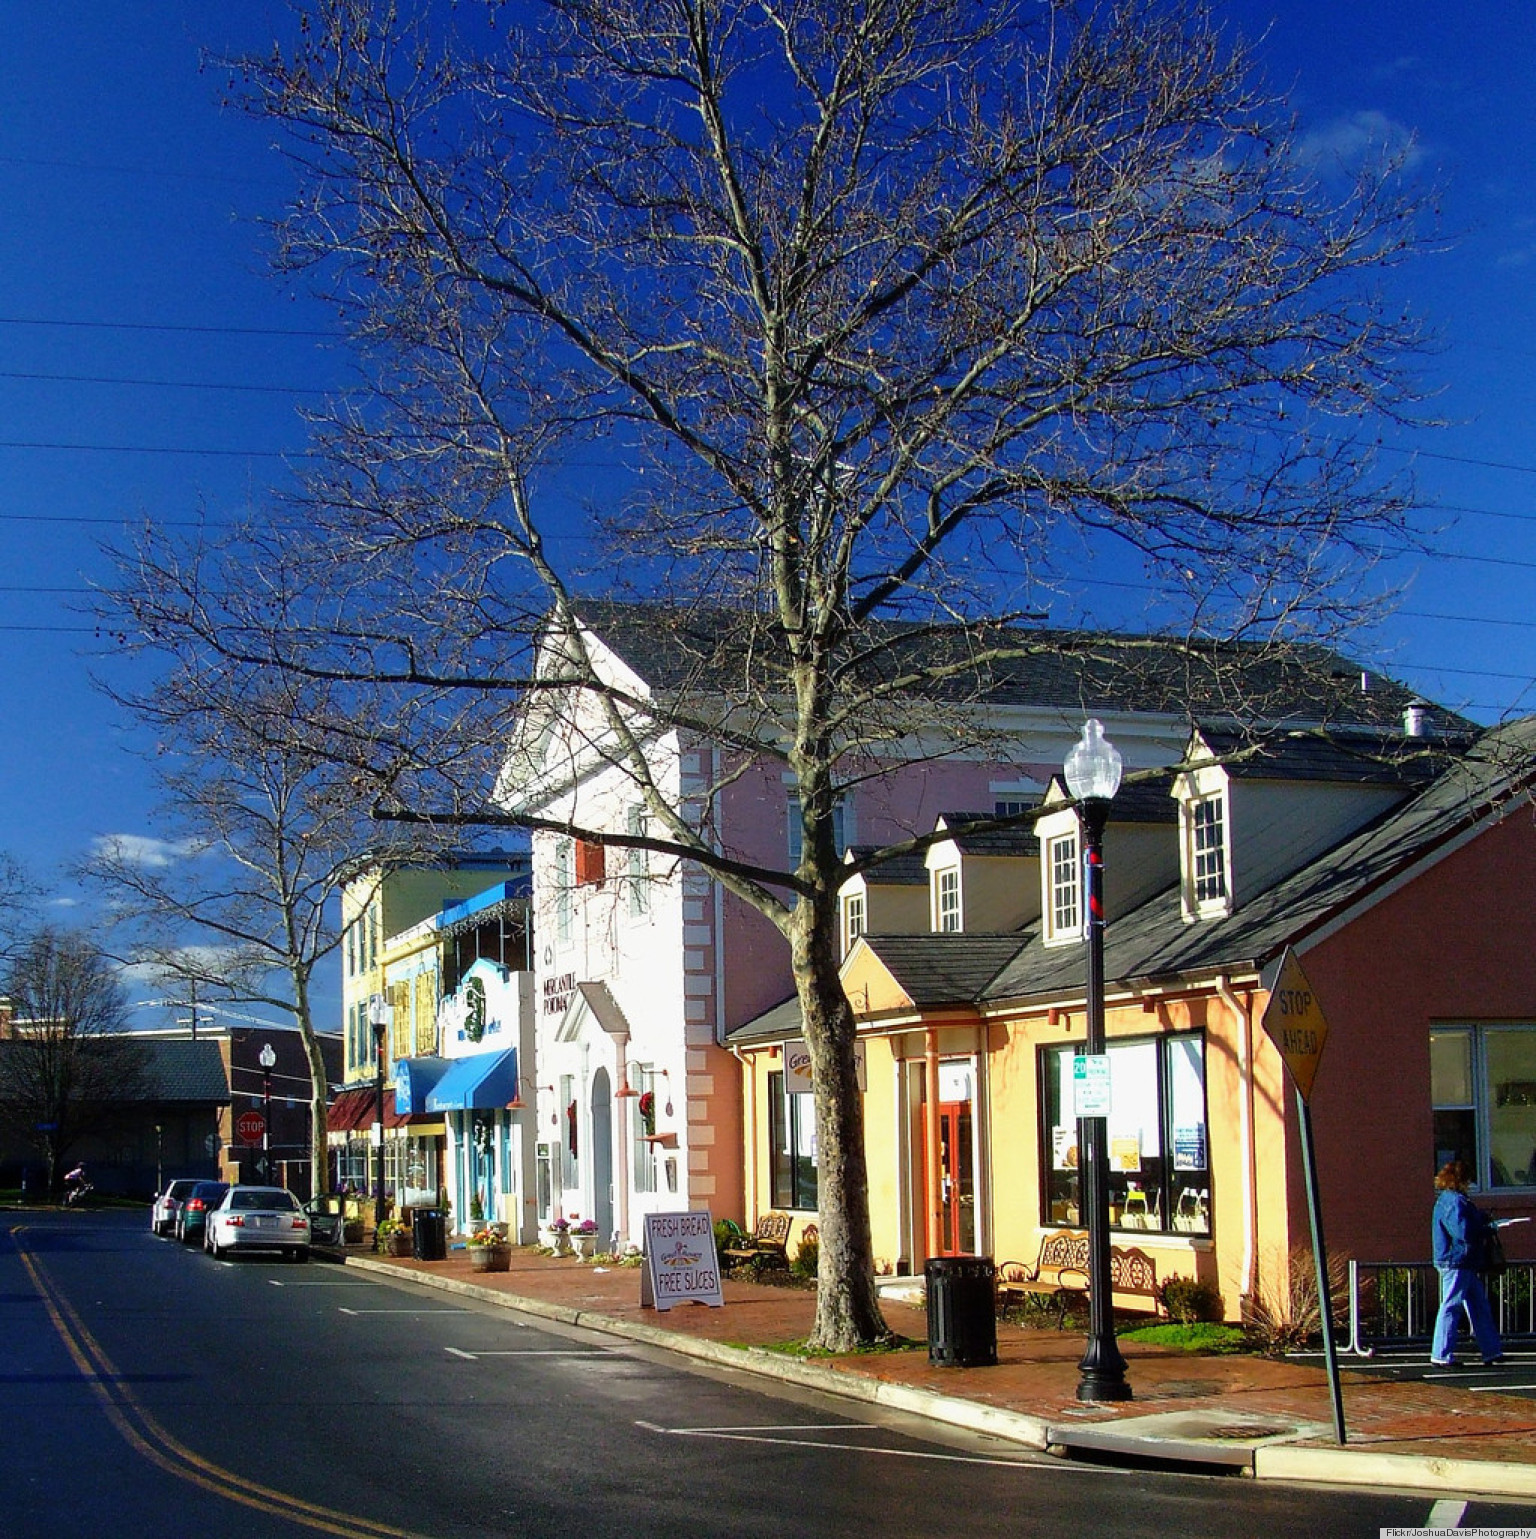 The 15 Friendliest Towns In America Named By Forbes And Nextdoor.com ...